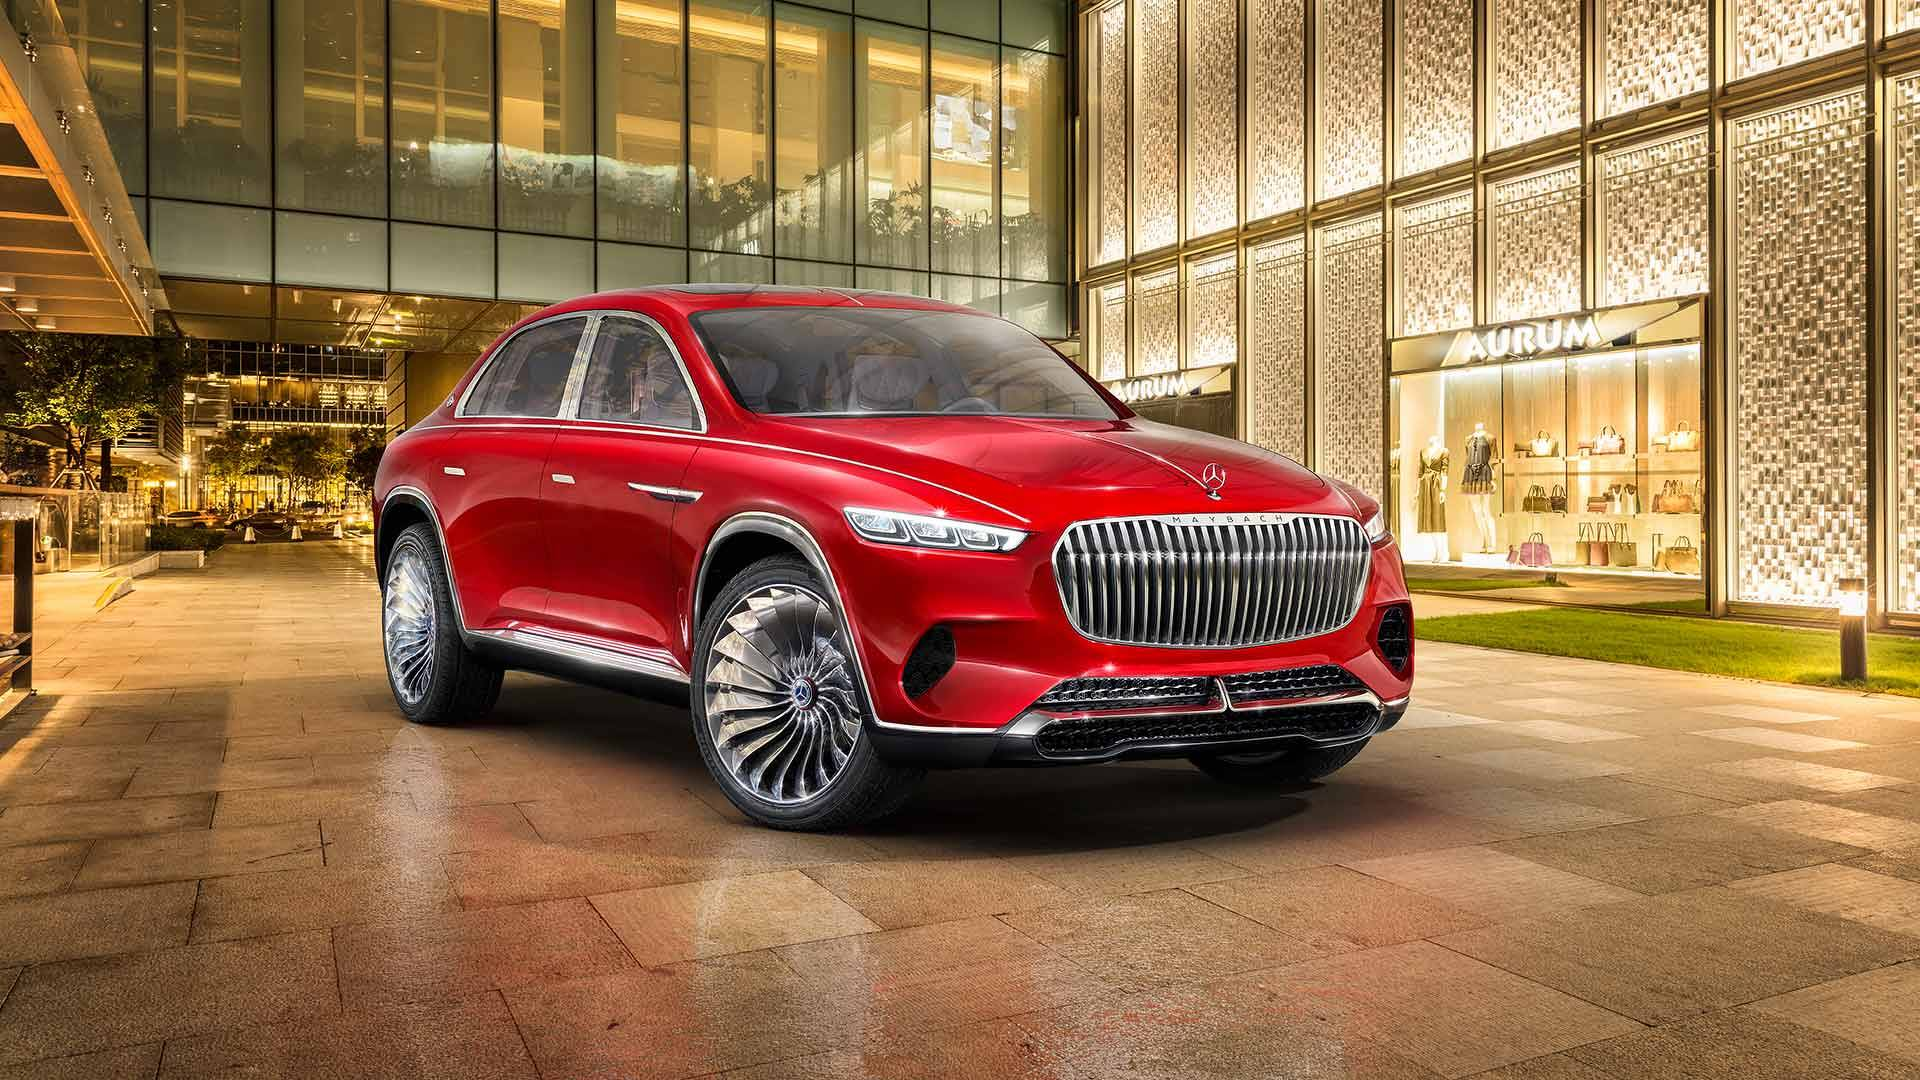 Mercedes-Benz раскрыл все подробности о концепте Vision Mercedes-Maybach Ultimate Luxury